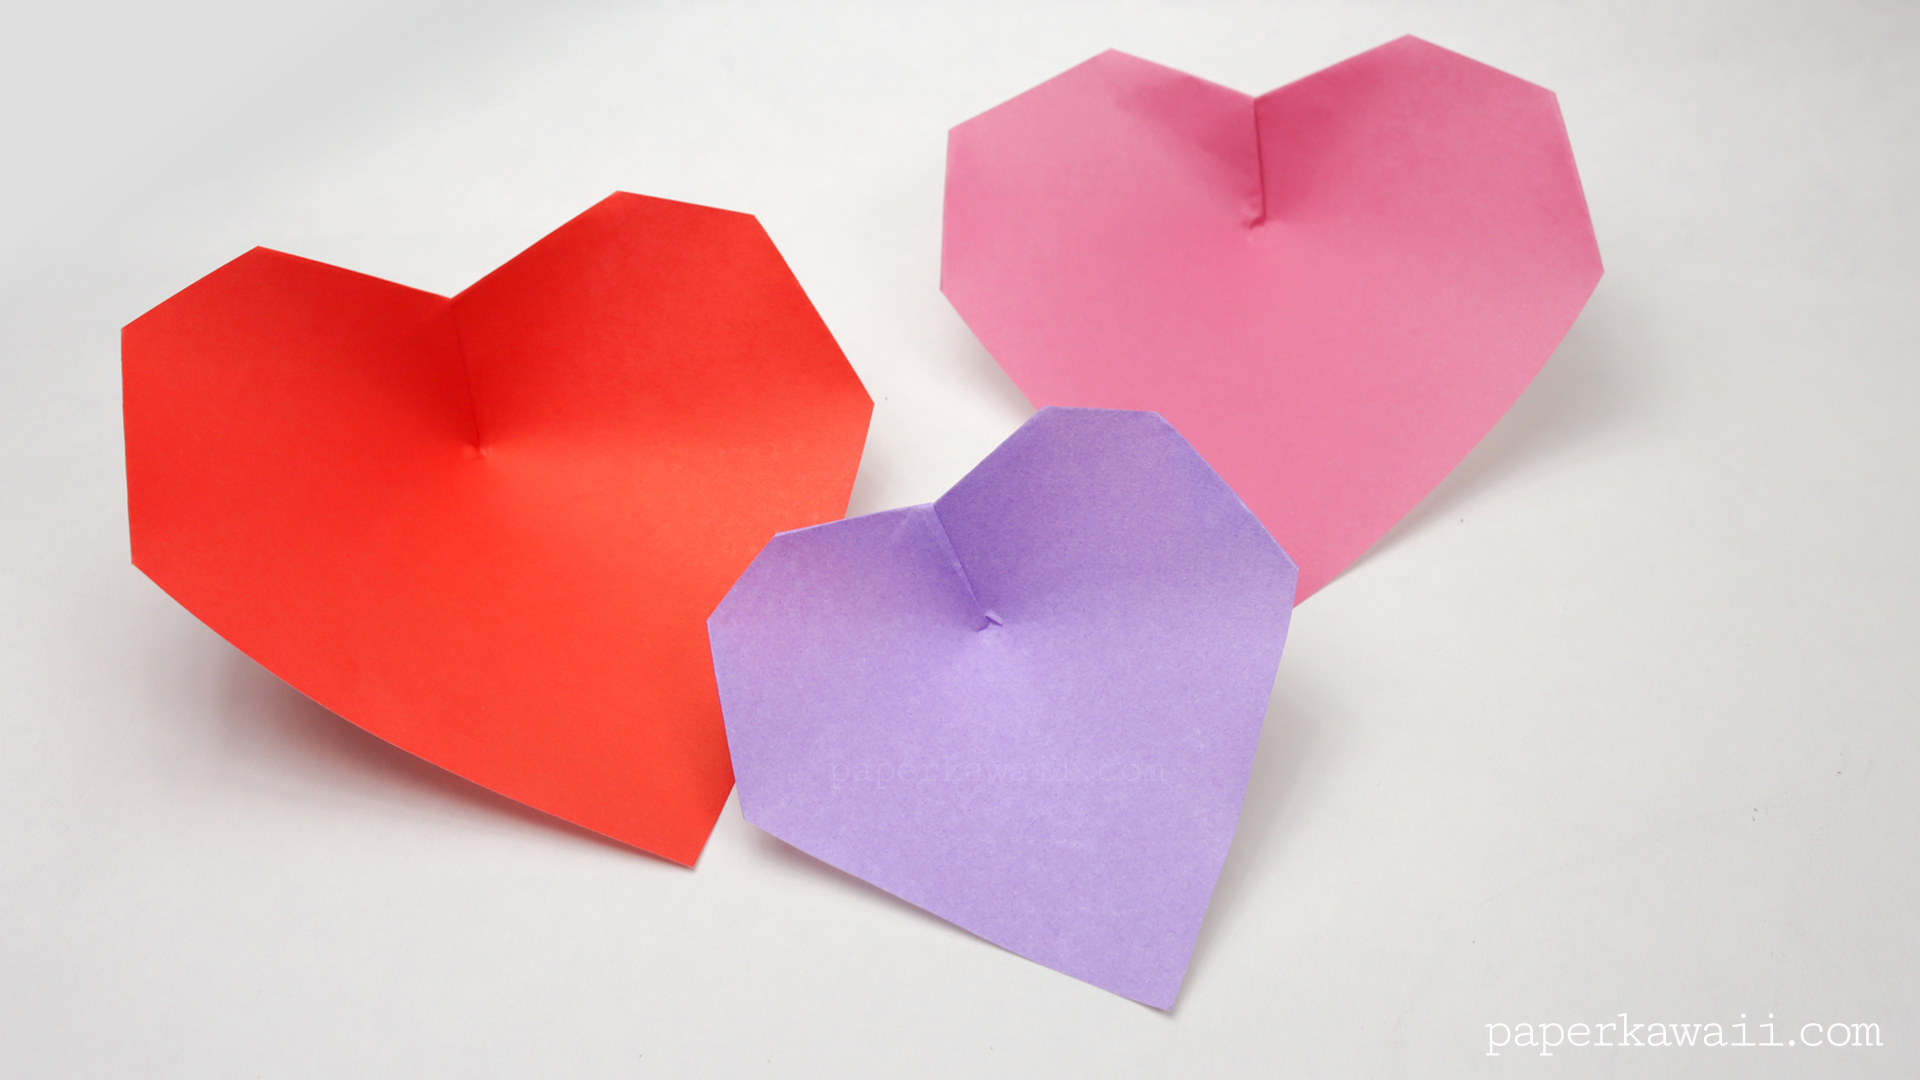 Super Easy Origami Heart Instructions - Paper Kawaii - photo#5